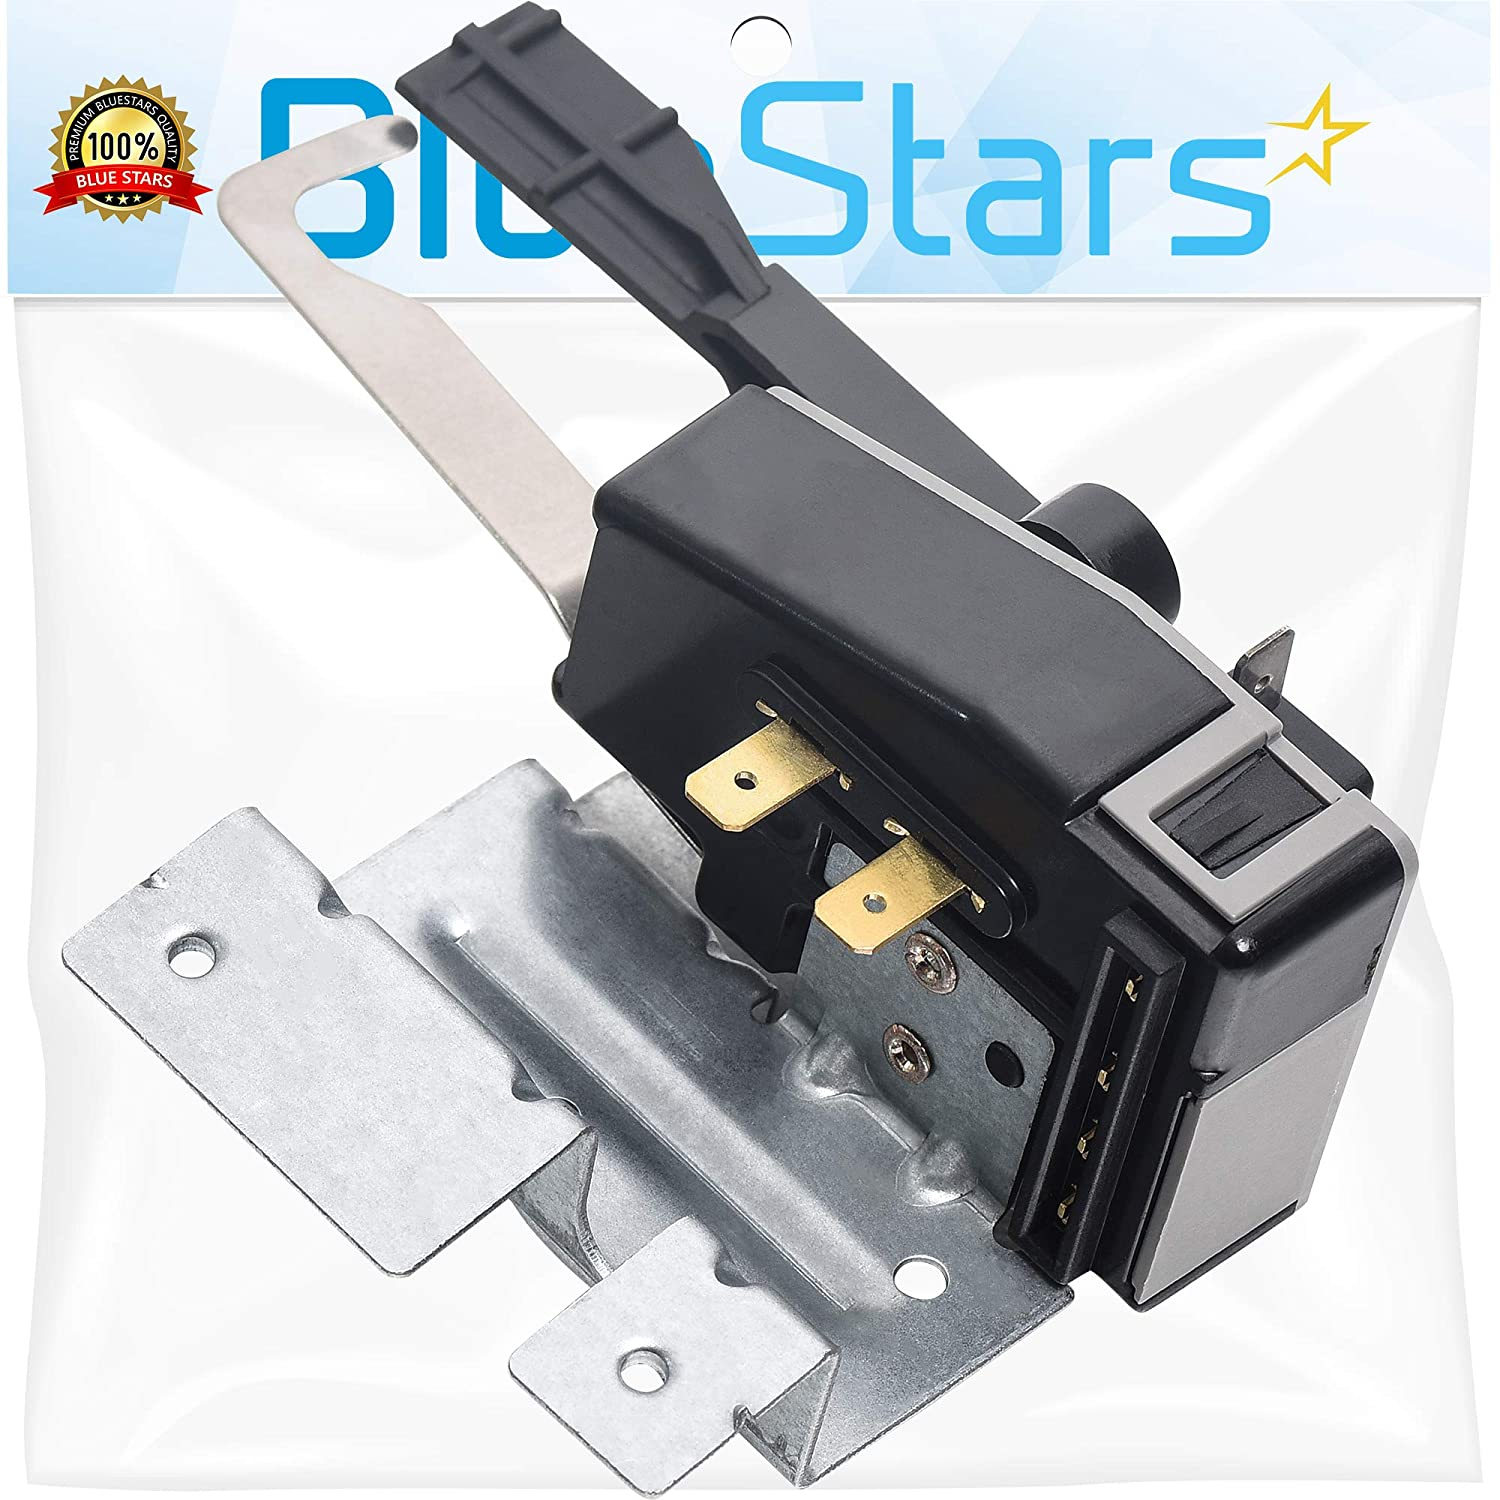 Ultra Durable 134101800 Washer Lid Lock Switch Replacement Part by Blue Stars- Exact Fit for Frigidaire Electrolux Washer - Replaces 131595100 131675600 145328